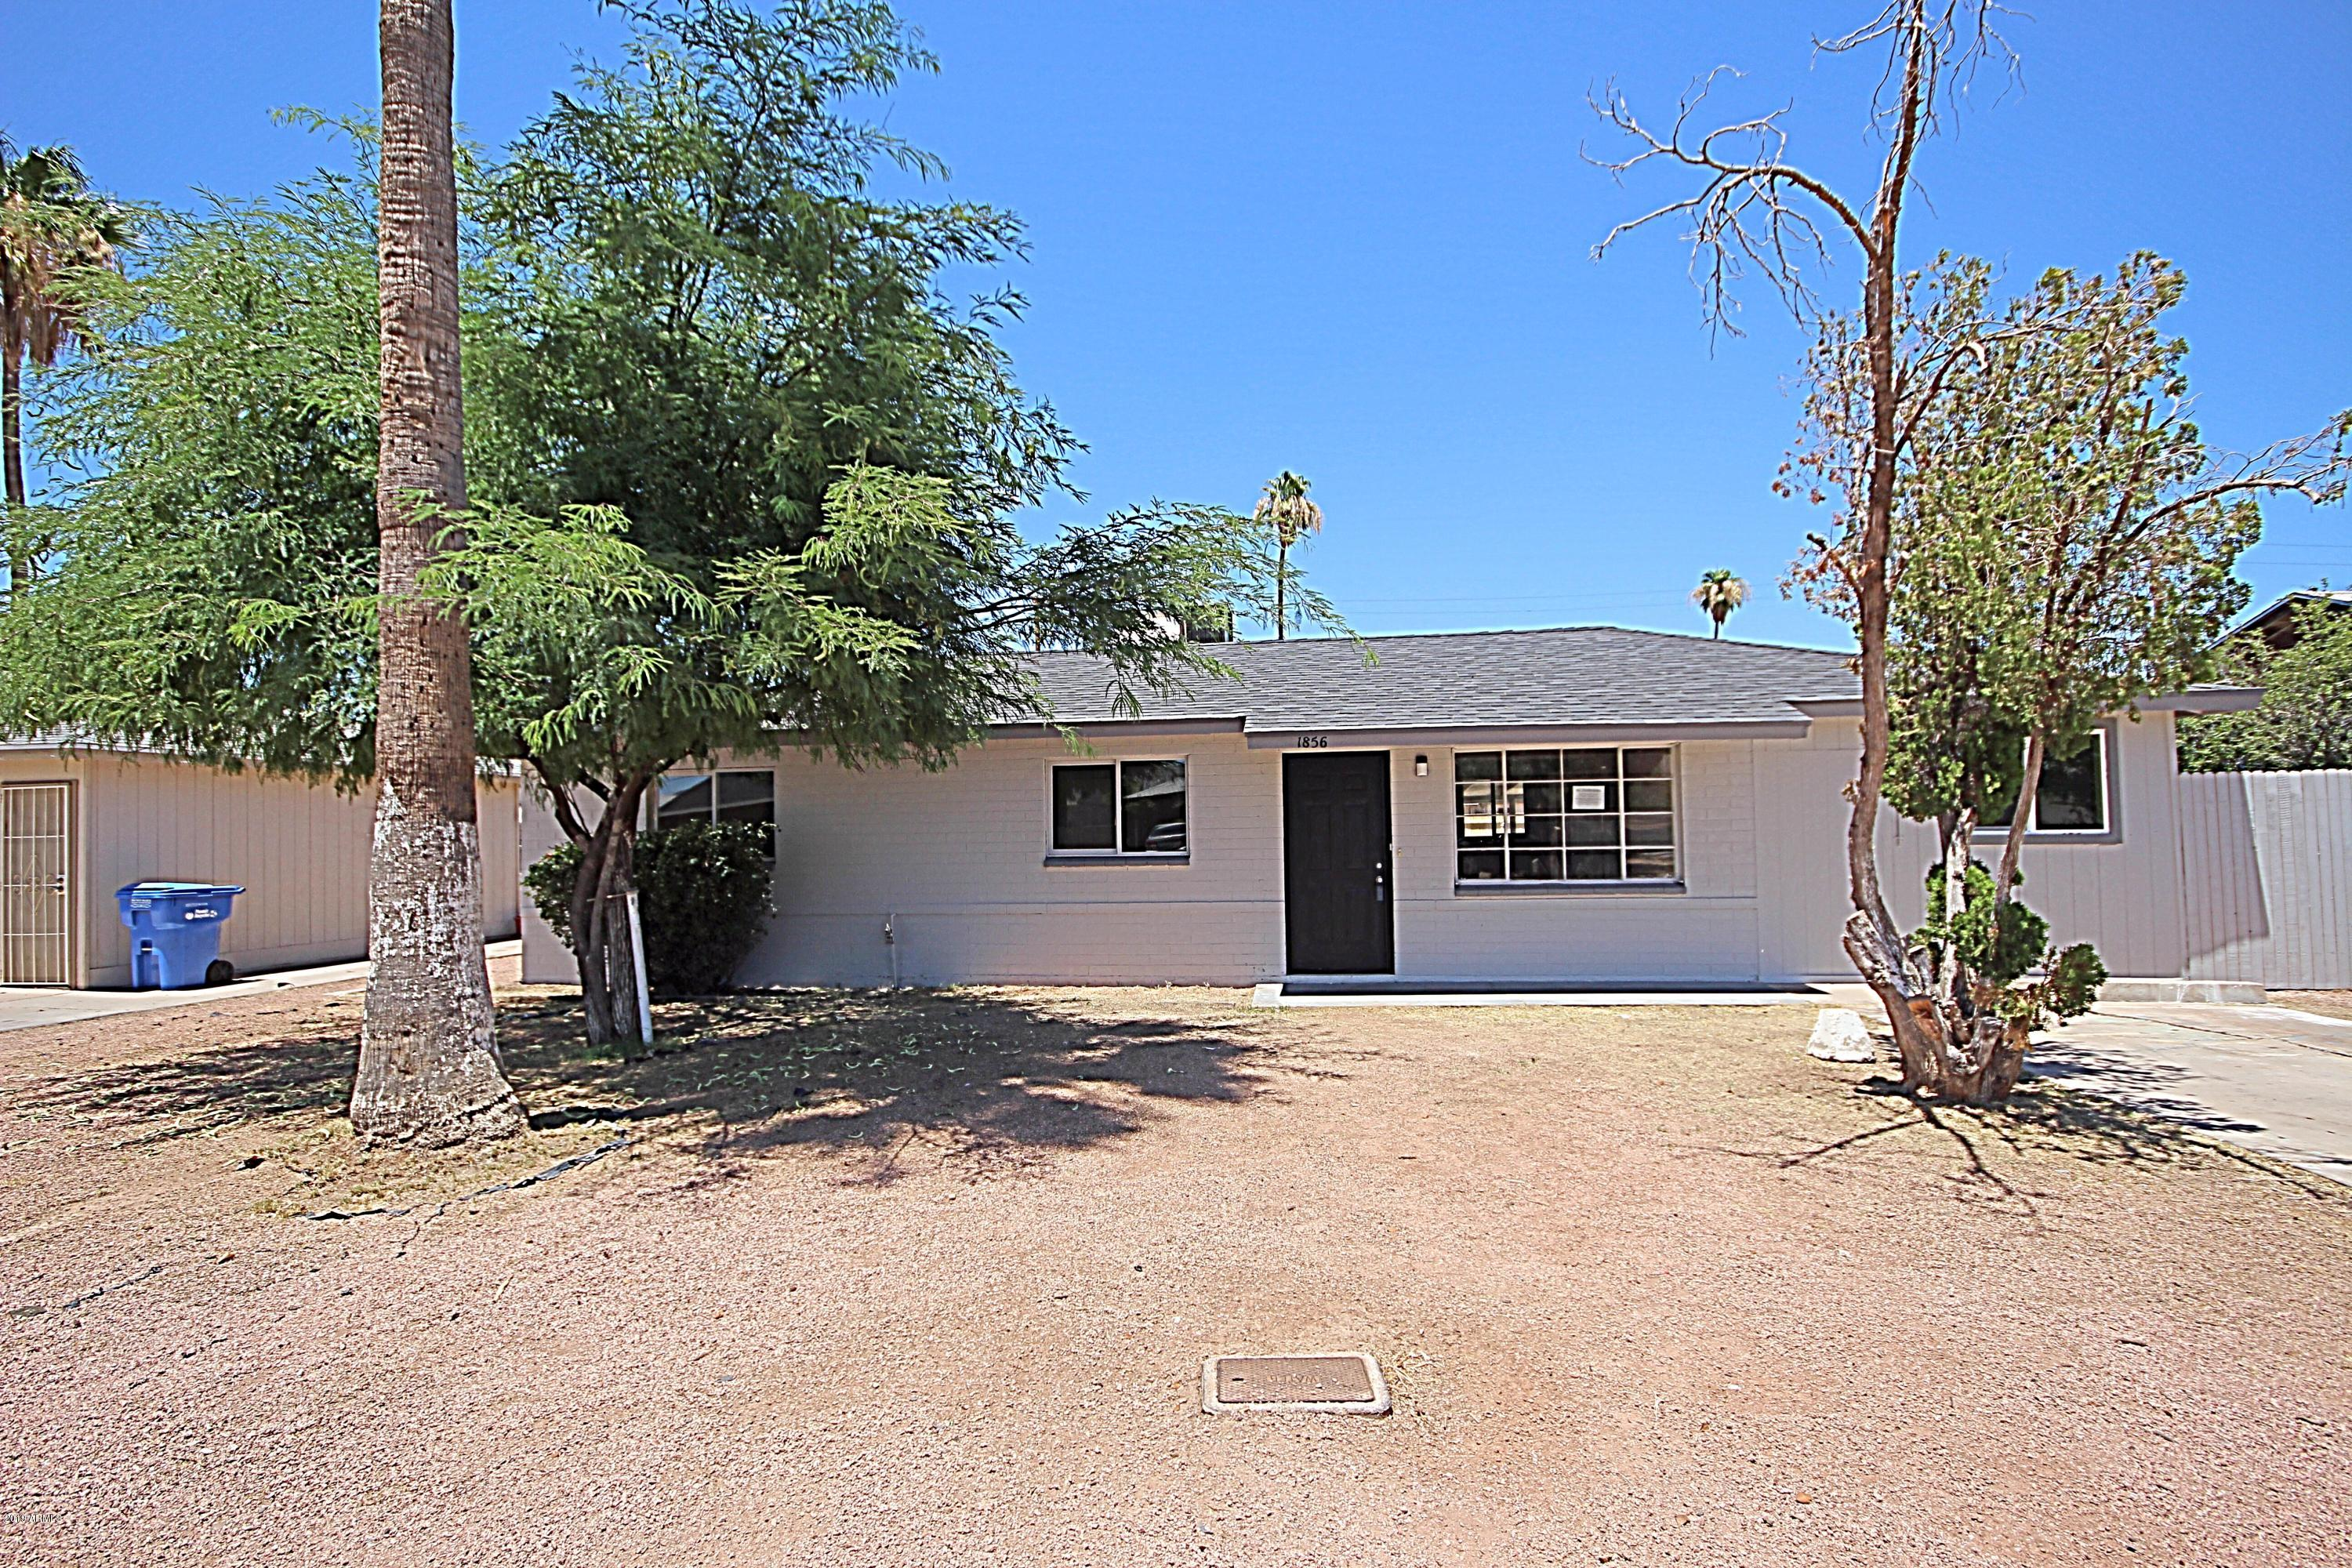 Incredible 1856 E Mobile Lane Phoenix Az 85040 Sold Listing Mls 5943067 Better Homes And Gardens Bloomtree Realty Home Interior And Landscaping Ologienasavecom